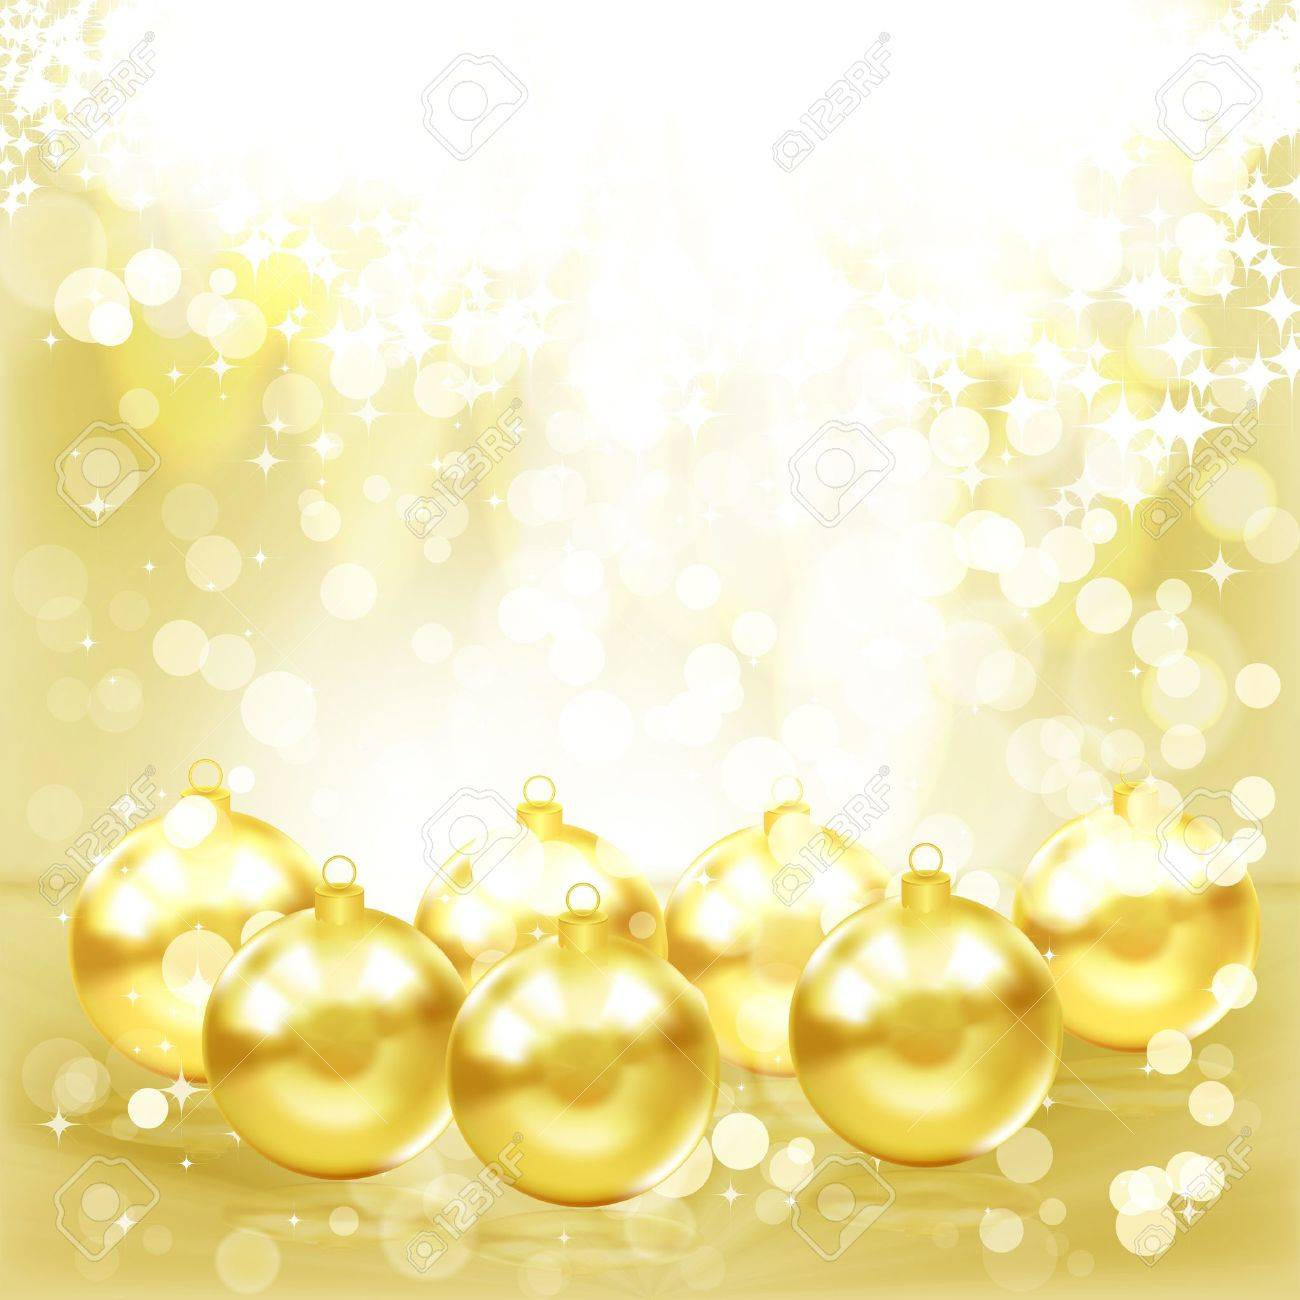 Gold Sparkles Clipart Gold Sparkle Golden